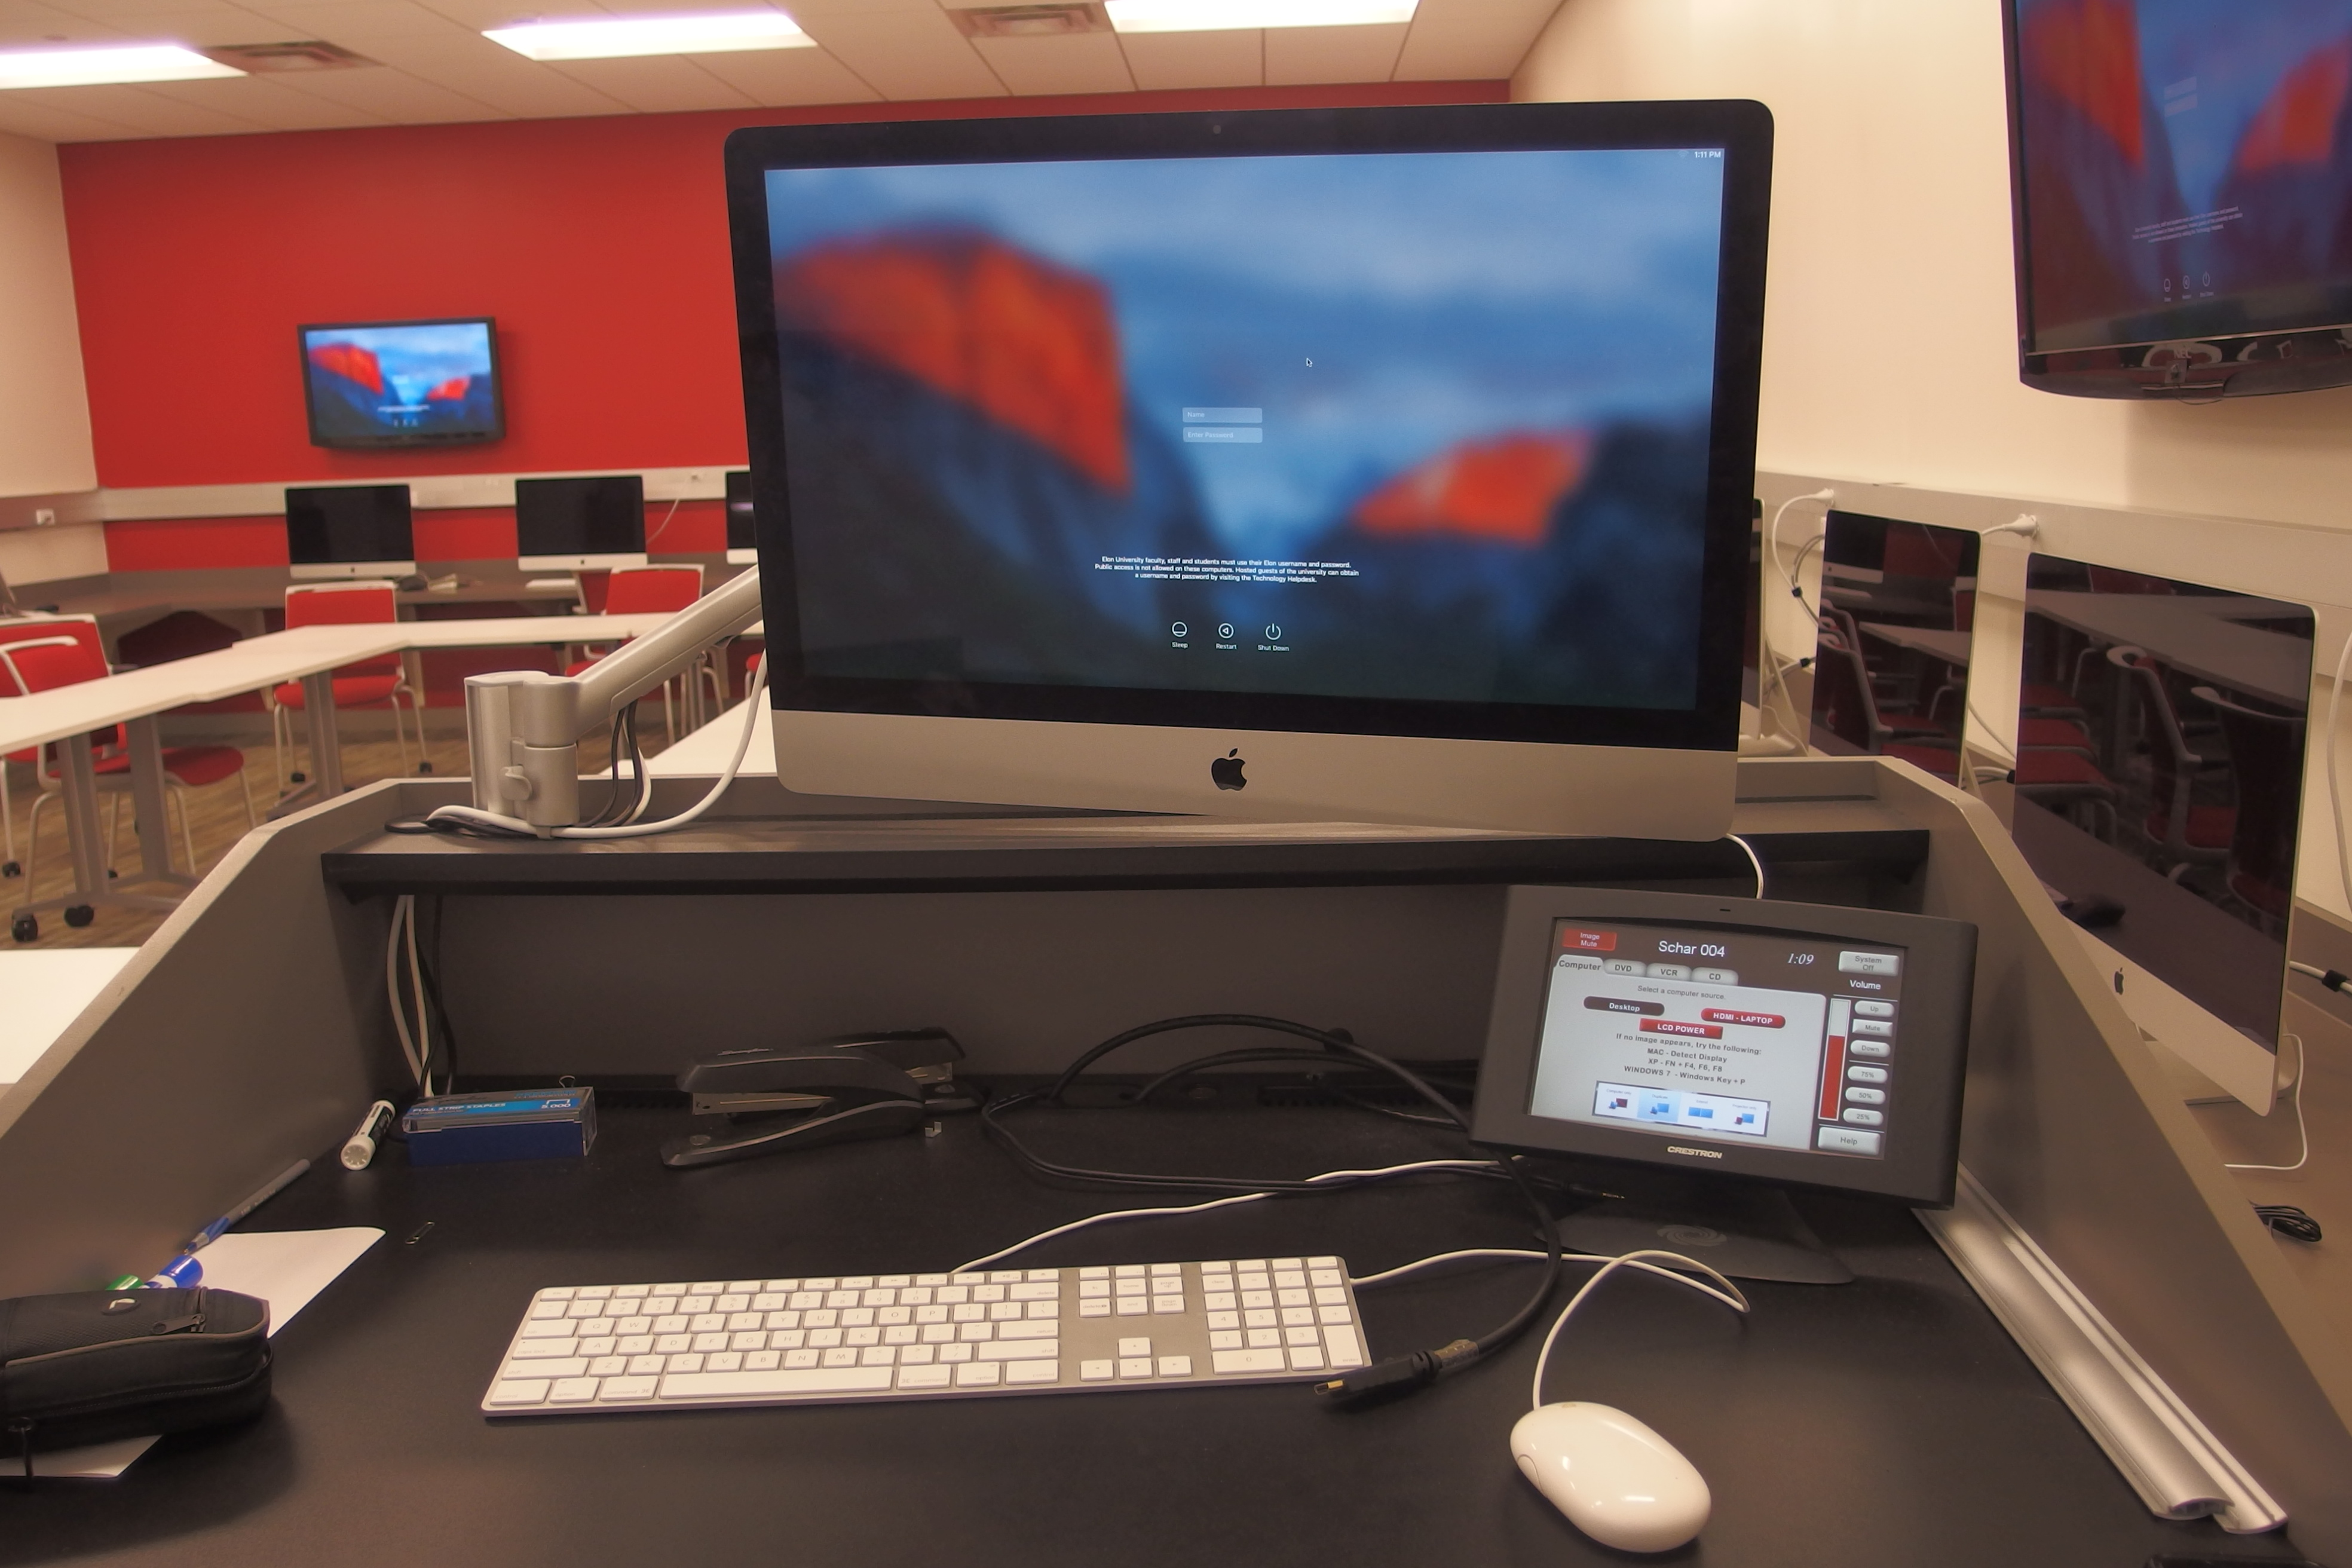 A photo of the instructor station mac computer